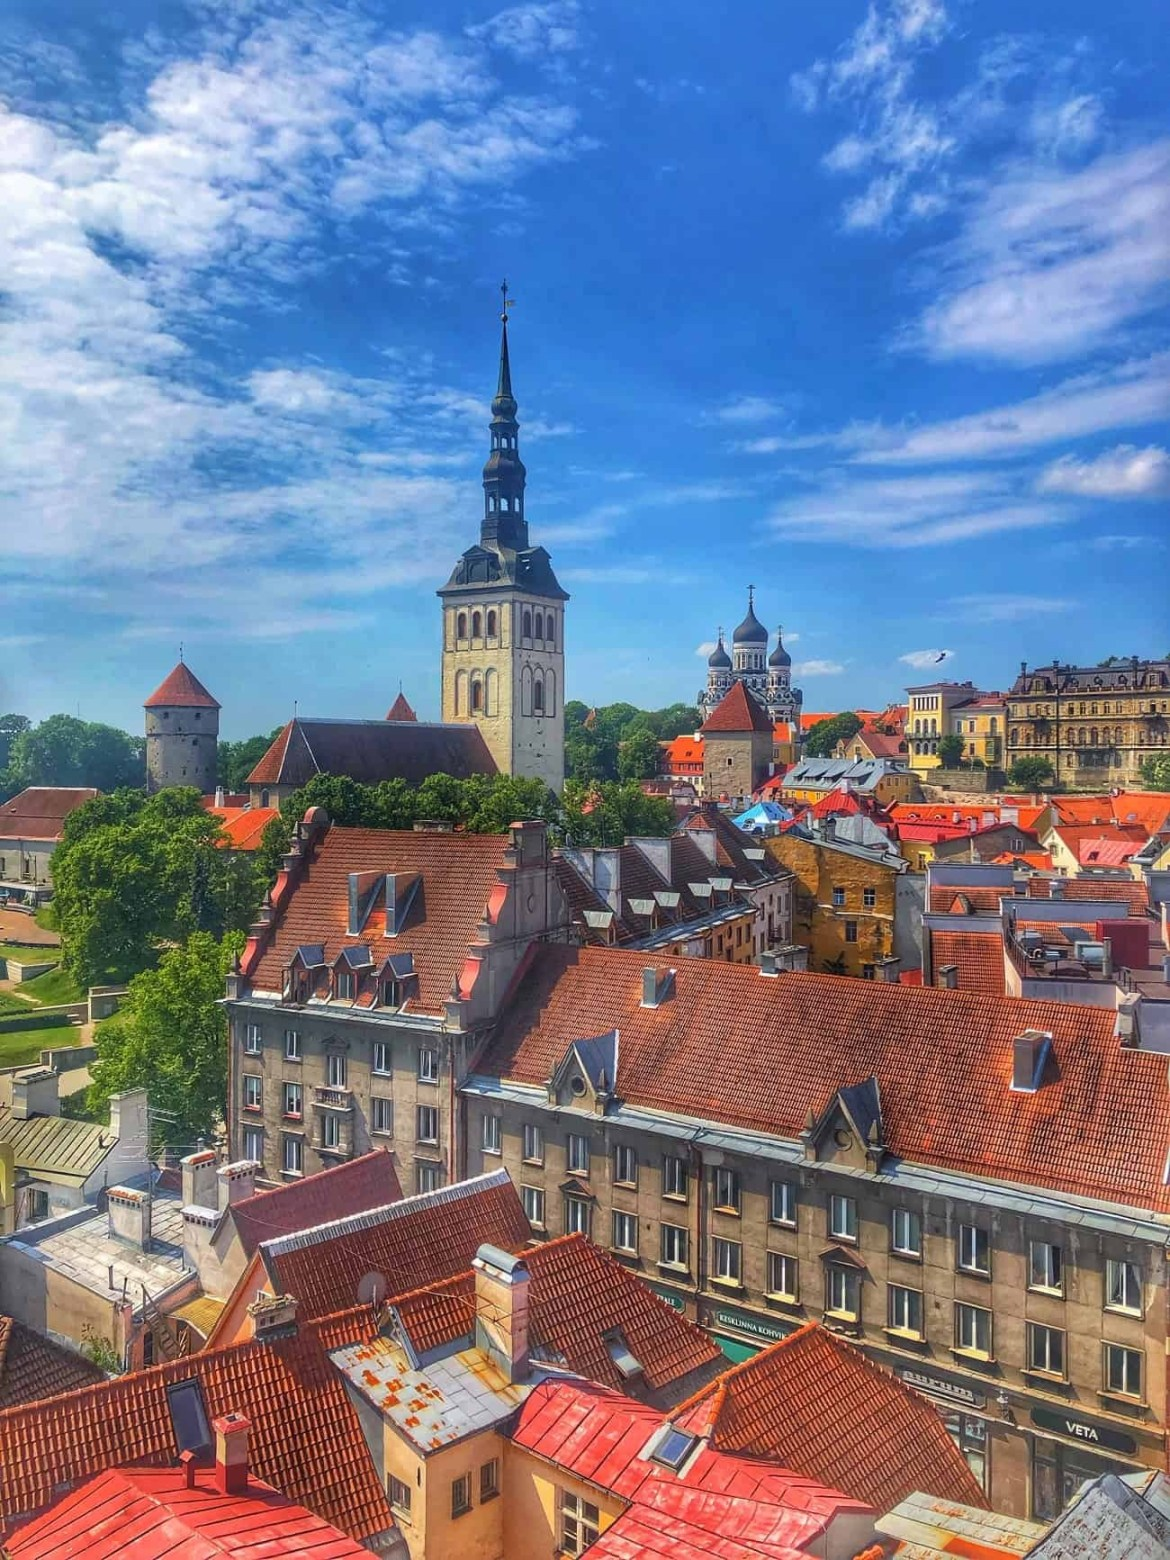 The view from Tallinn Town Hall and Tower.